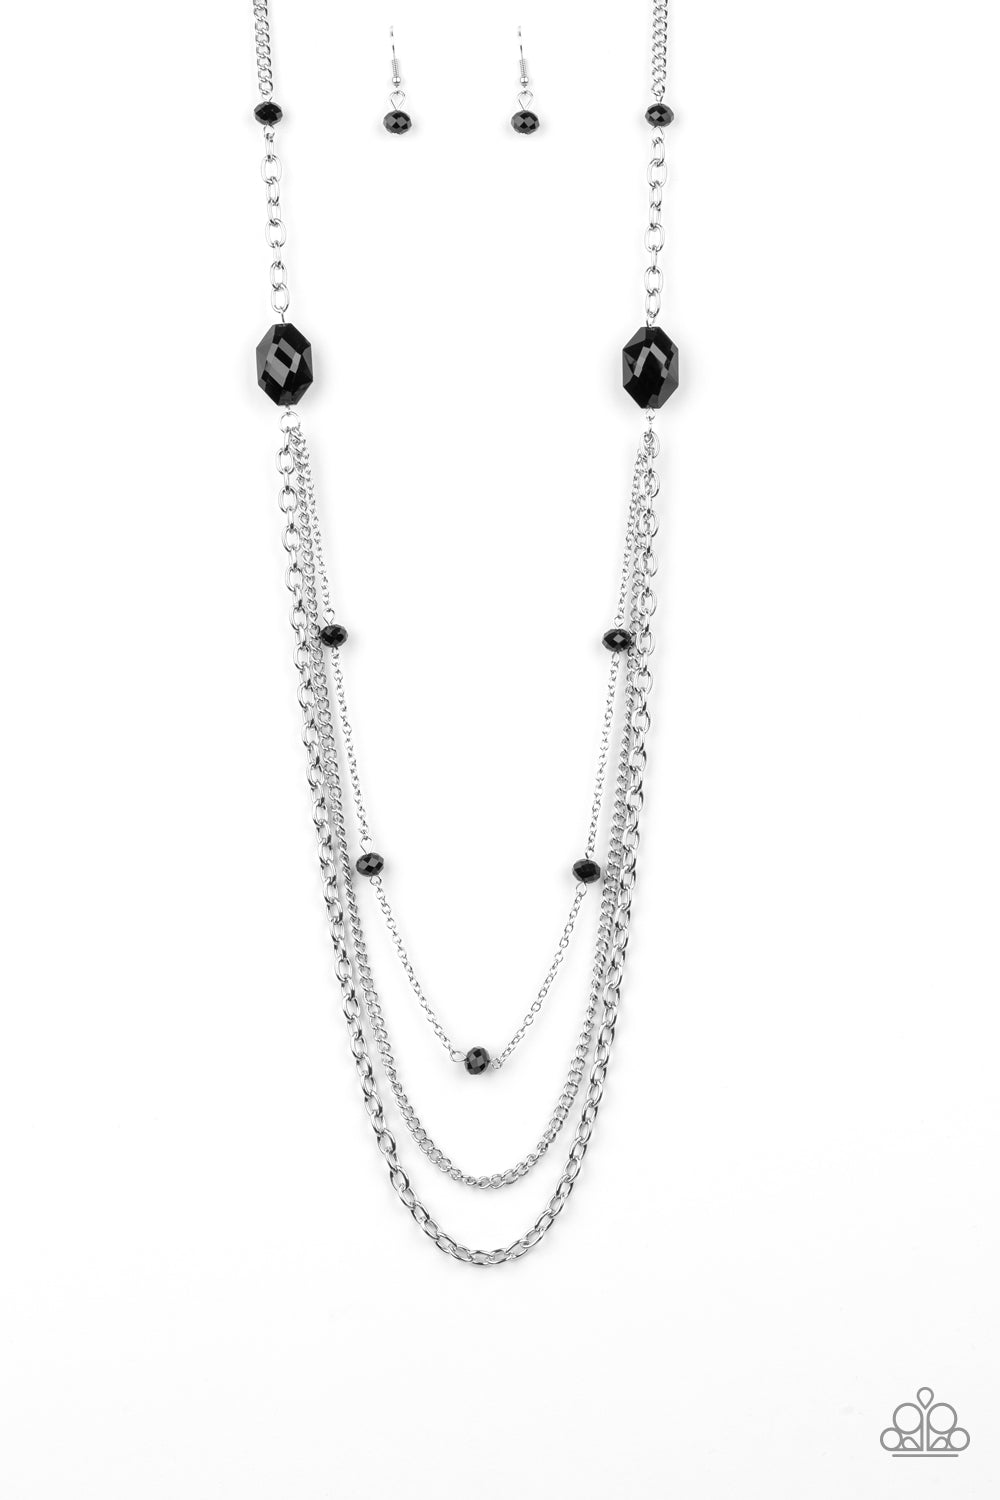 Paparazzi Necklace ~ Dare To Dazzle - Black